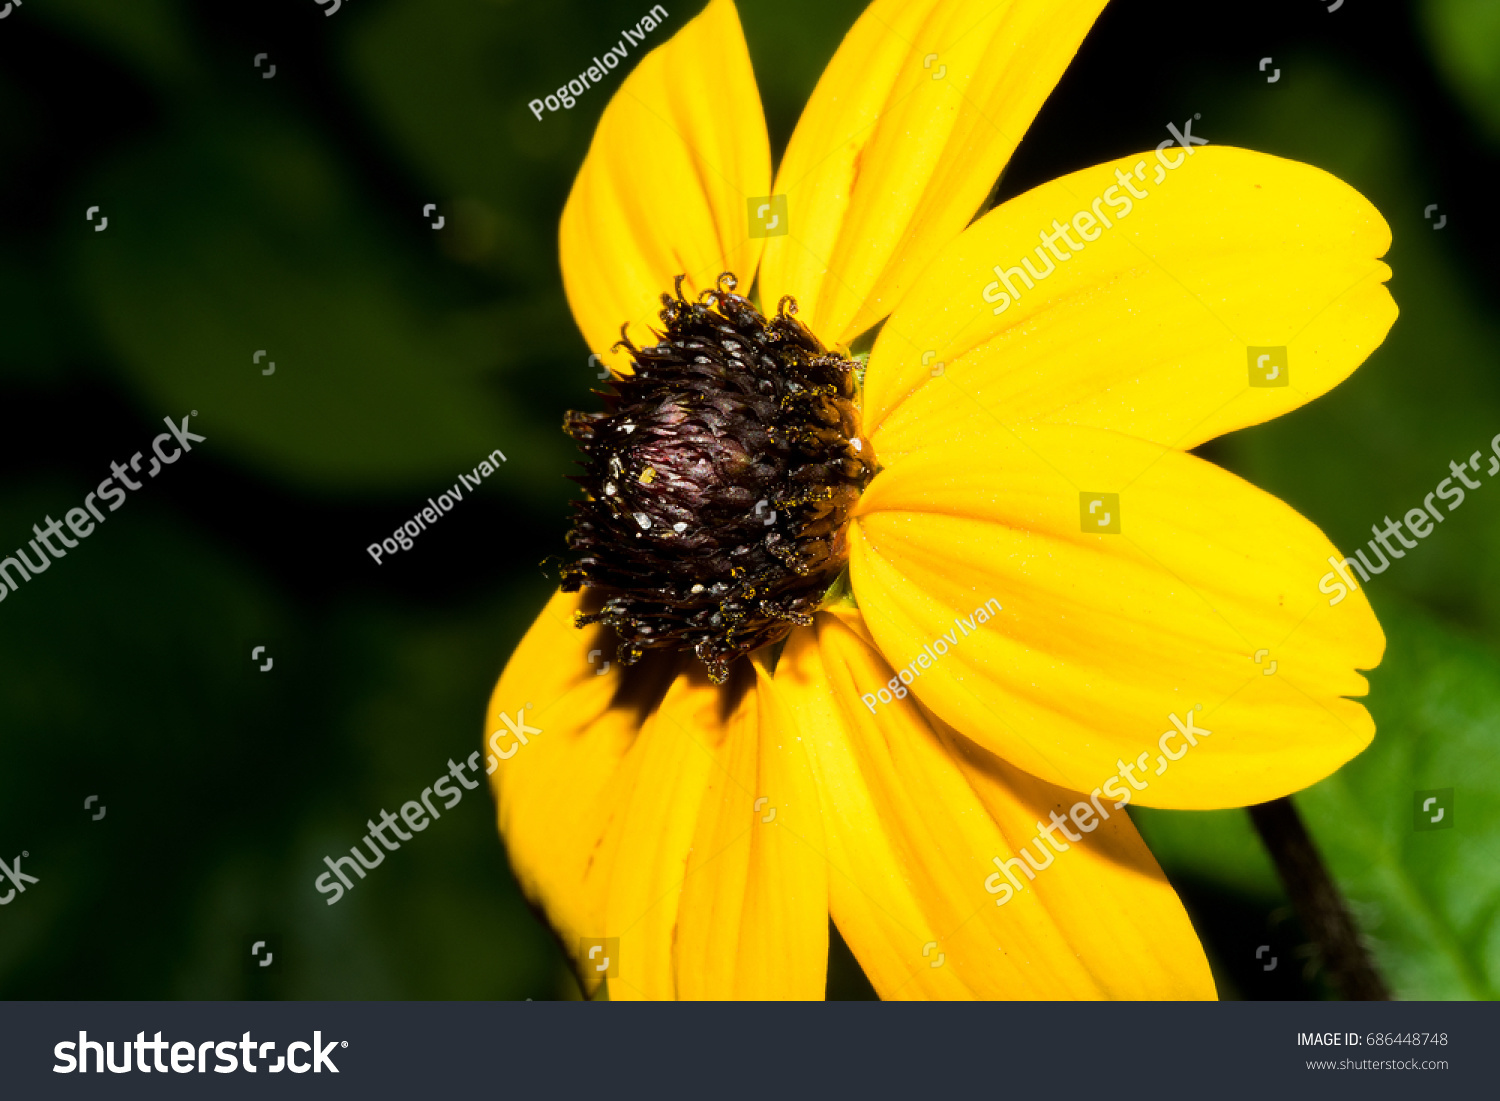 A Flower With Bright Yellow Petals And A Dark Brown Center Macro